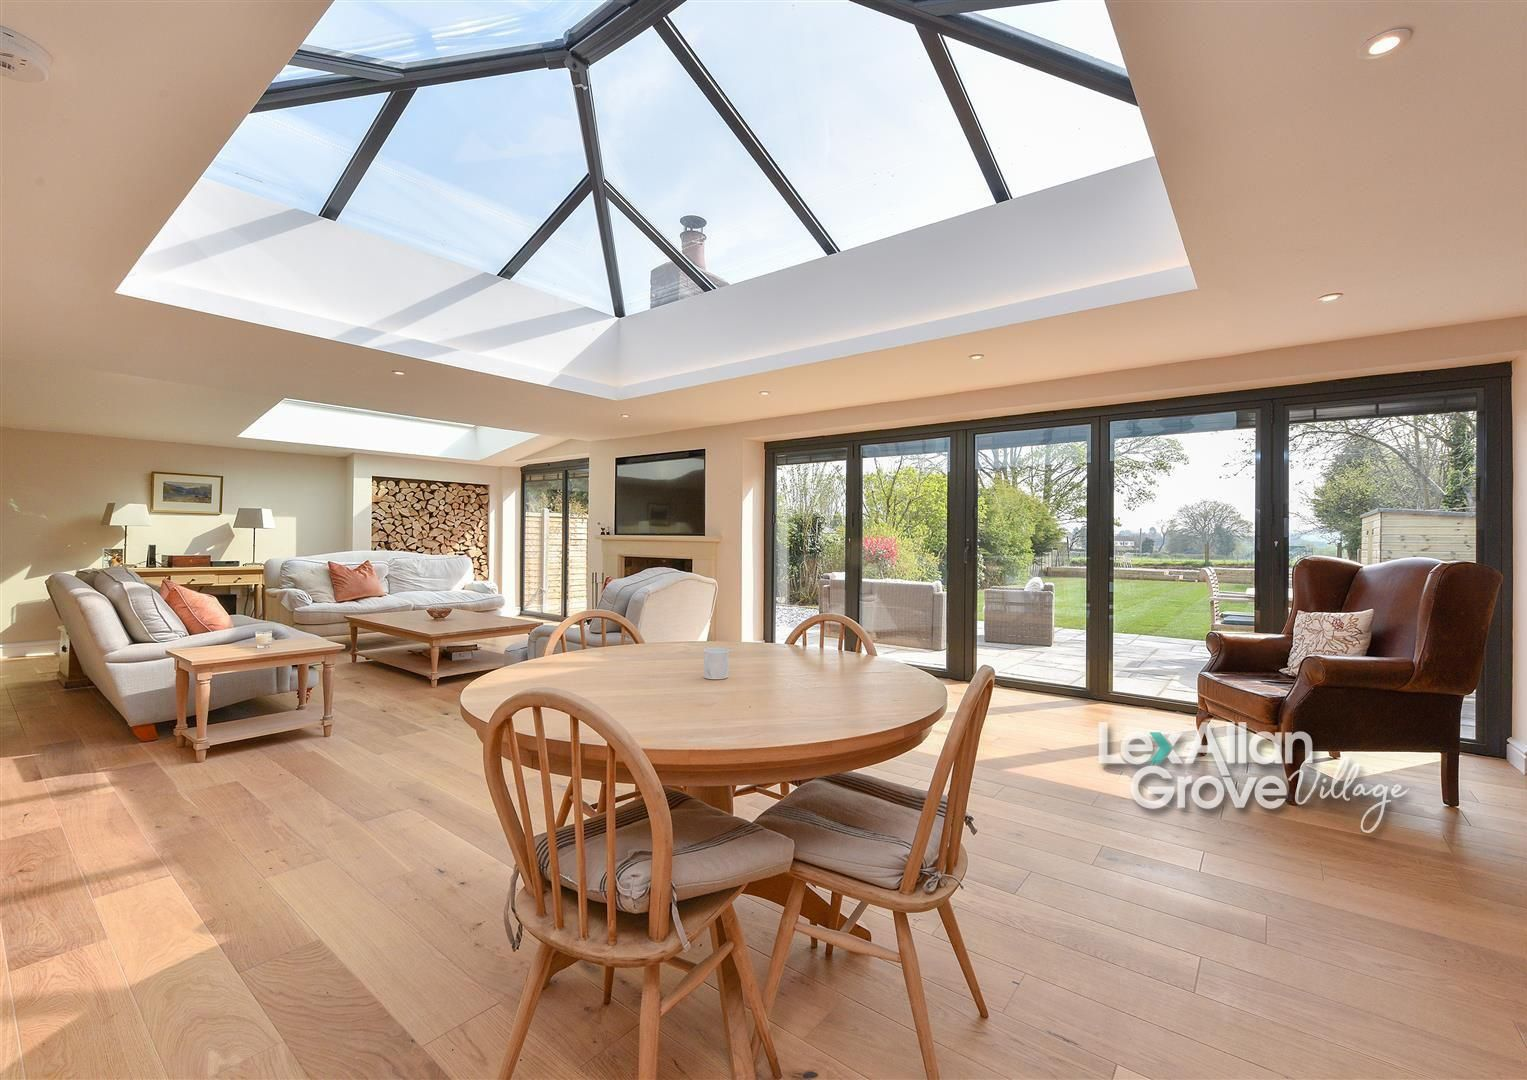 4 bed semi-detached for sale in Hagley, DY8